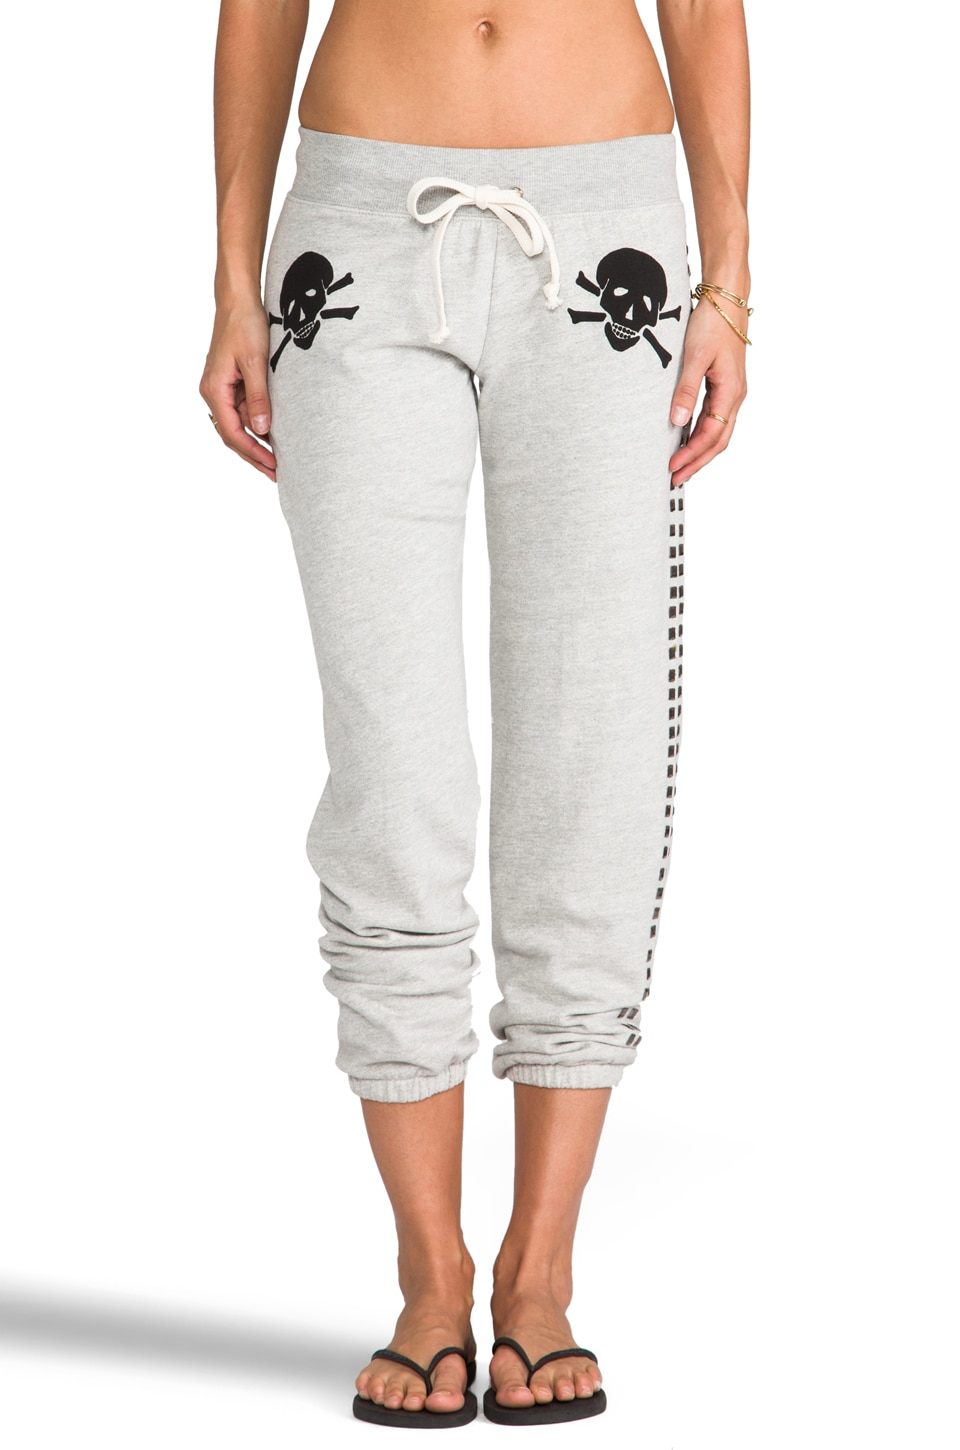 291 Skull Flag Baggy Sweatpant in Heather Grey